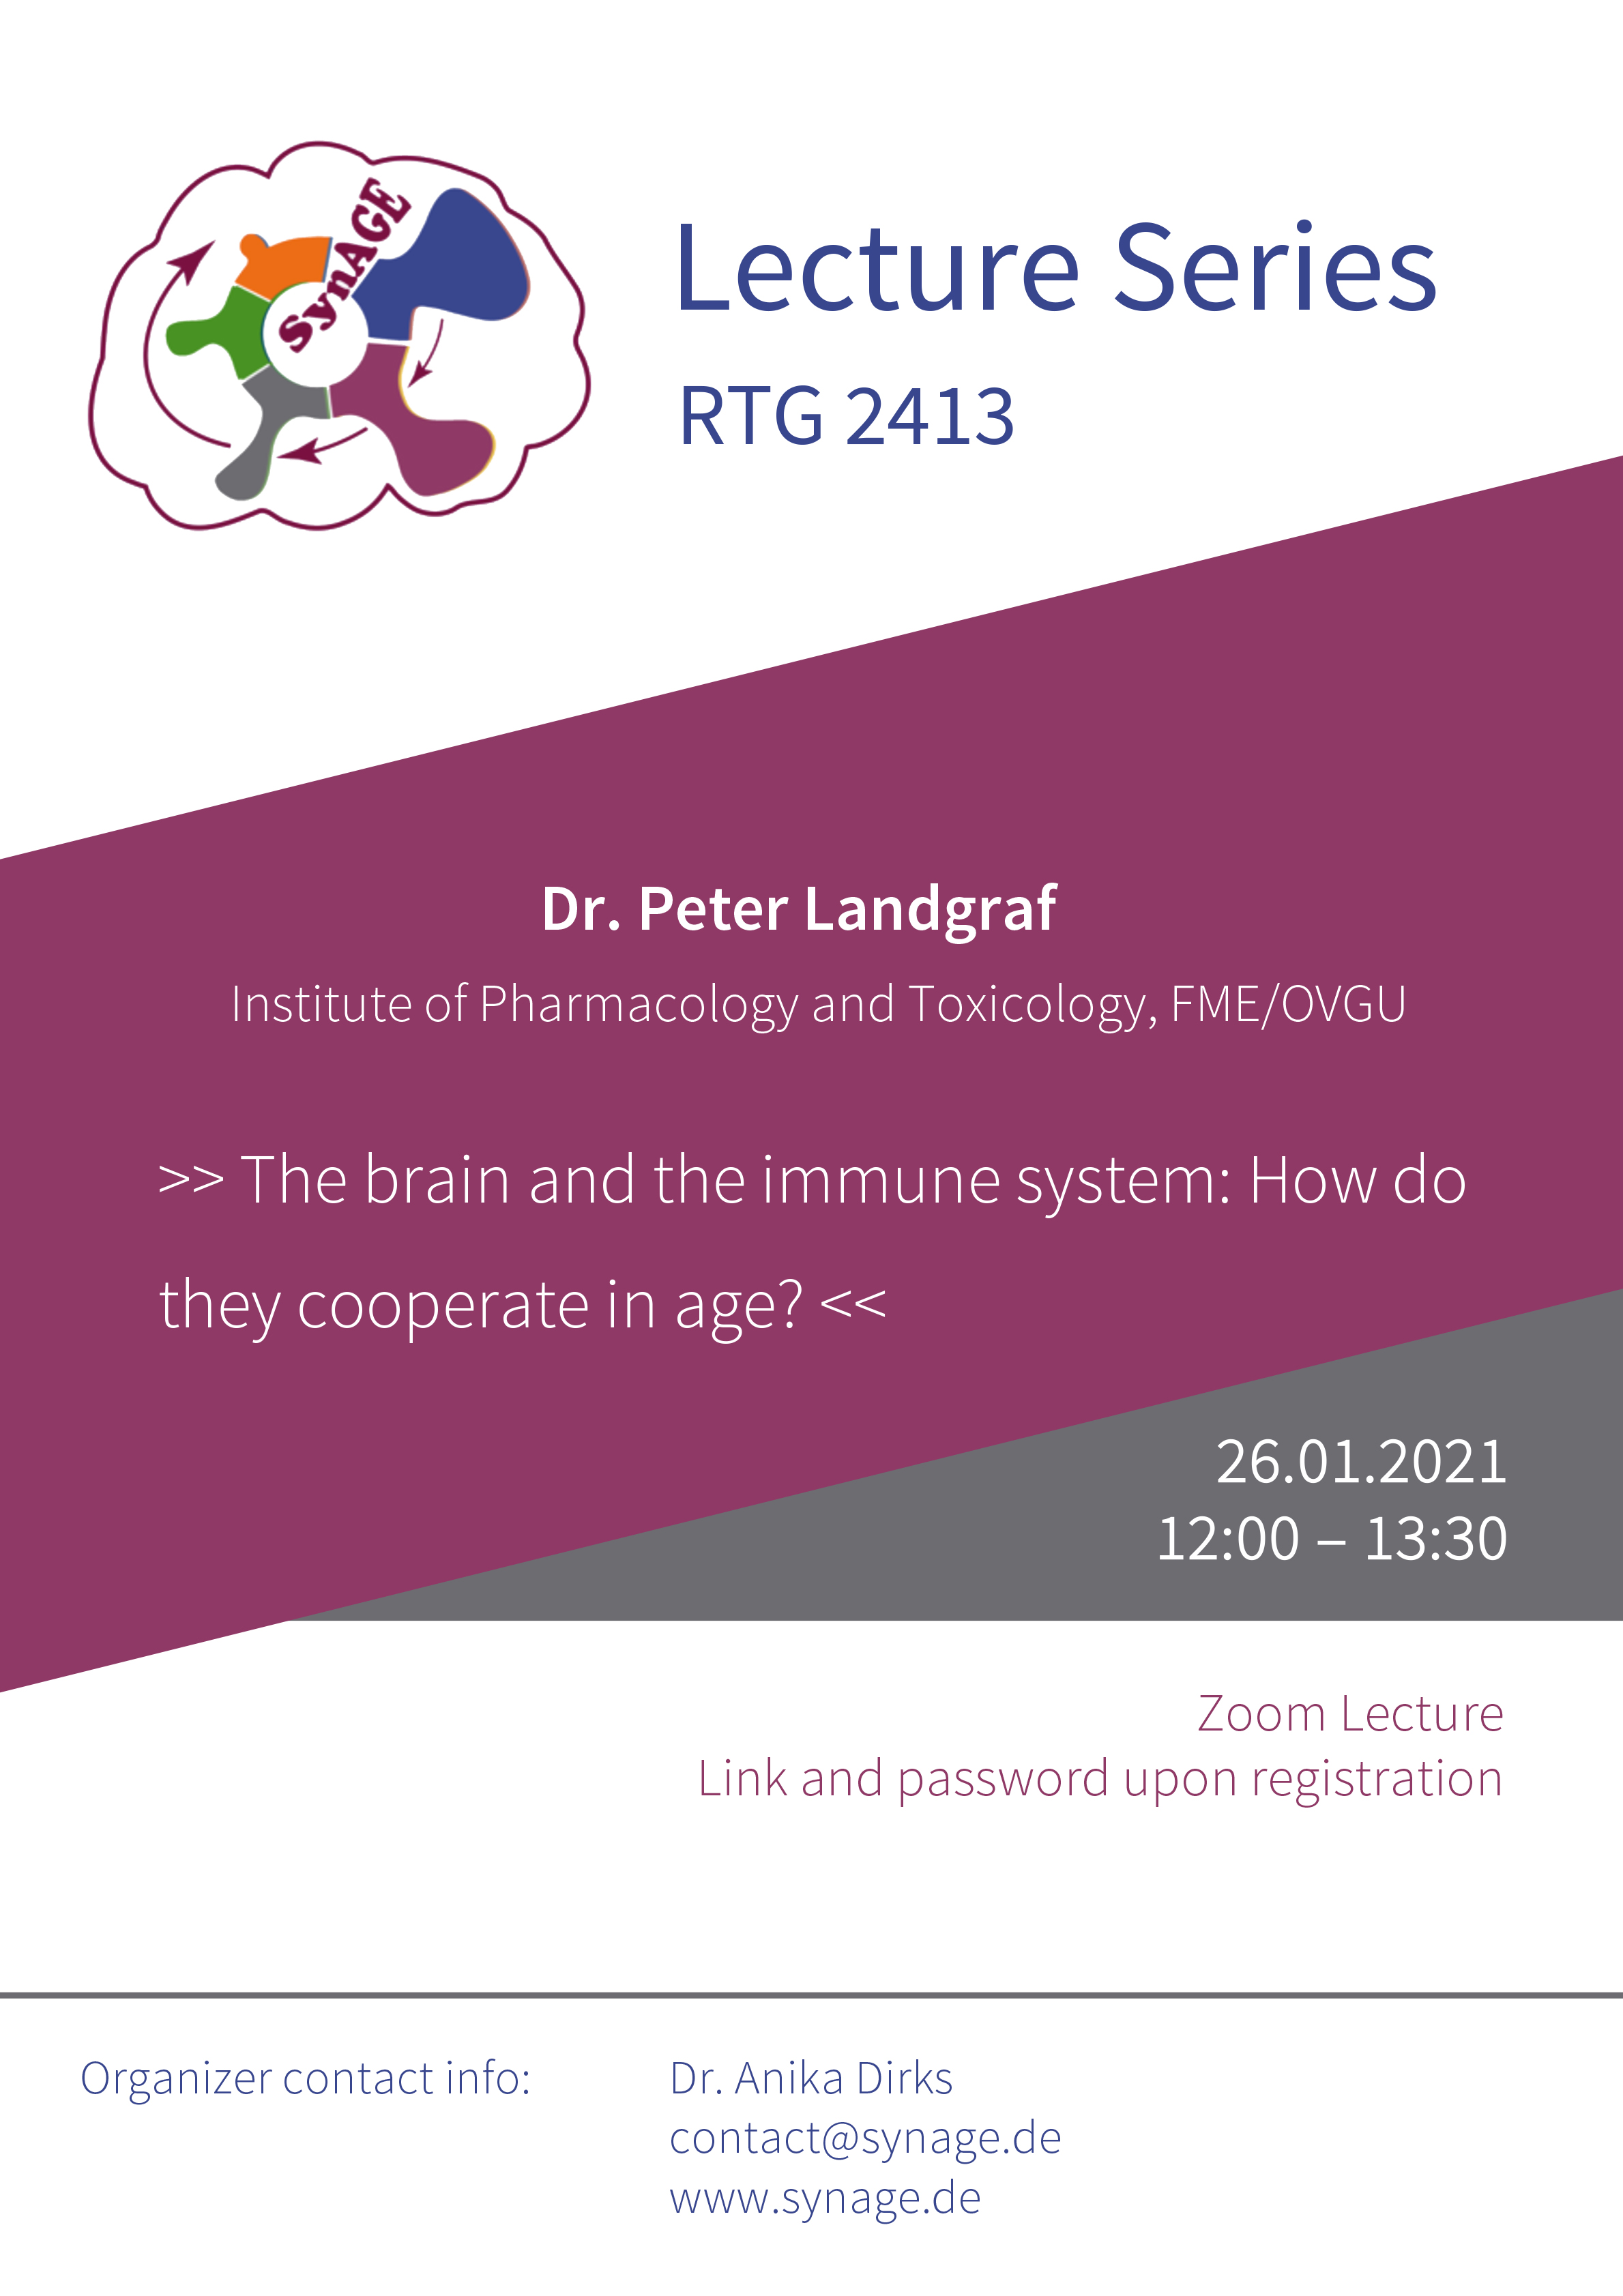 SynAGE Lecture: The brain and the immune system: How do they cooperate in age? @ Zoom